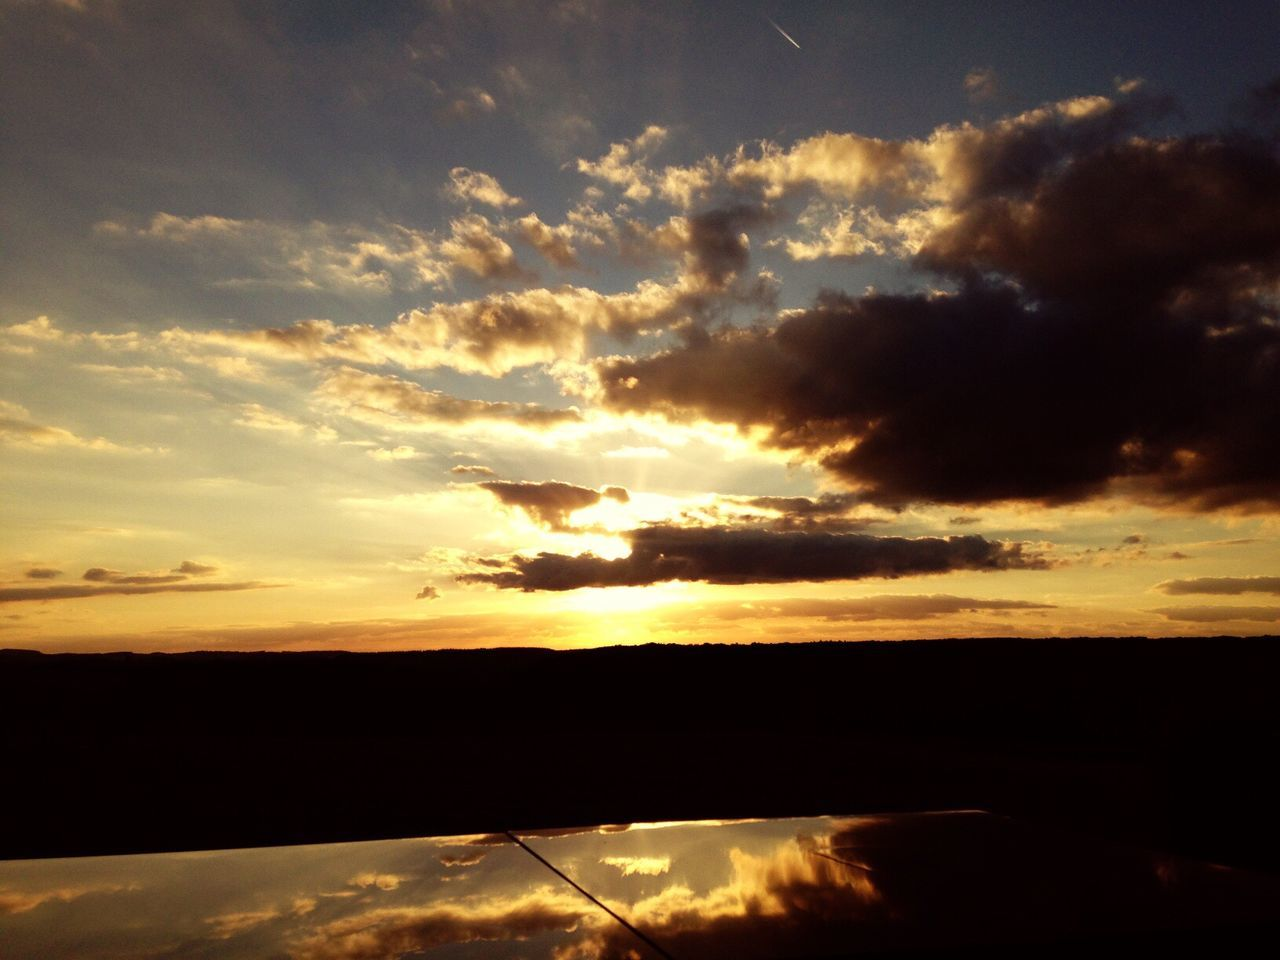 sunset, scenics, sky, tranquil scene, beauty in nature, silhouette, nature, tranquility, cloud - sky, no people, idyllic, outdoors, sun, water, day